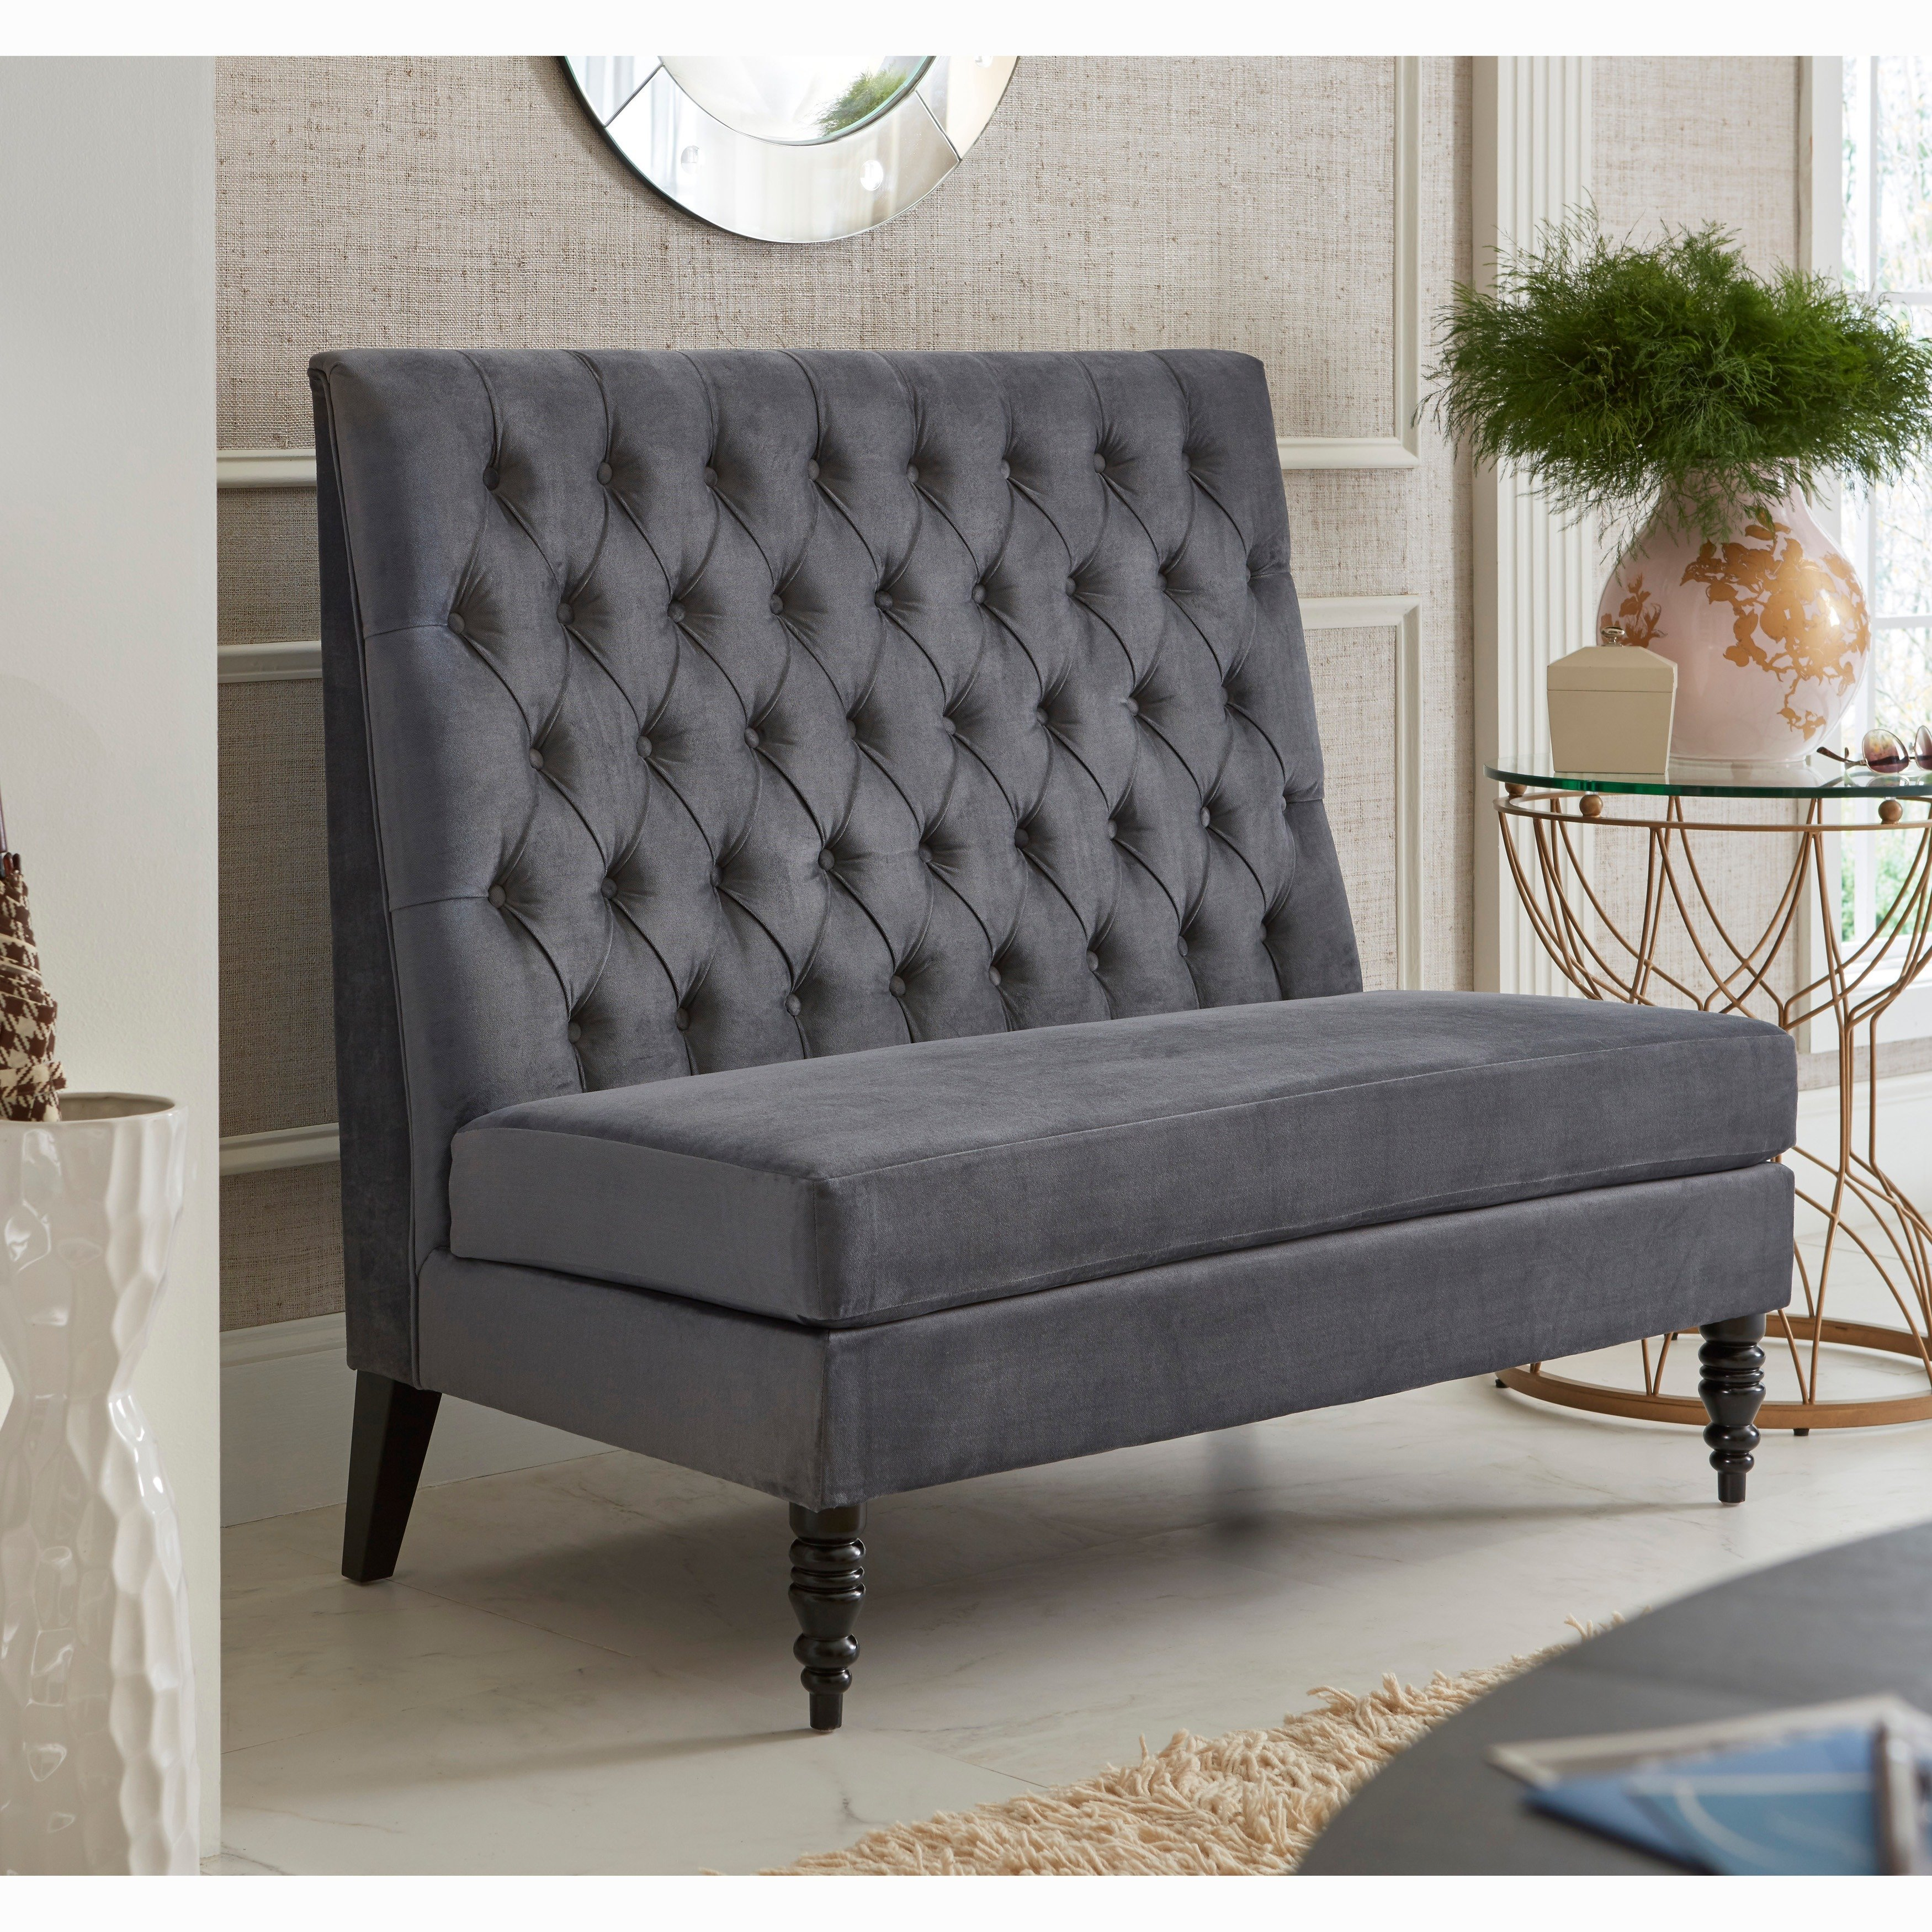 Sofaweb Silver/Grey Velvet Tufted Upholstered Banquette Bench